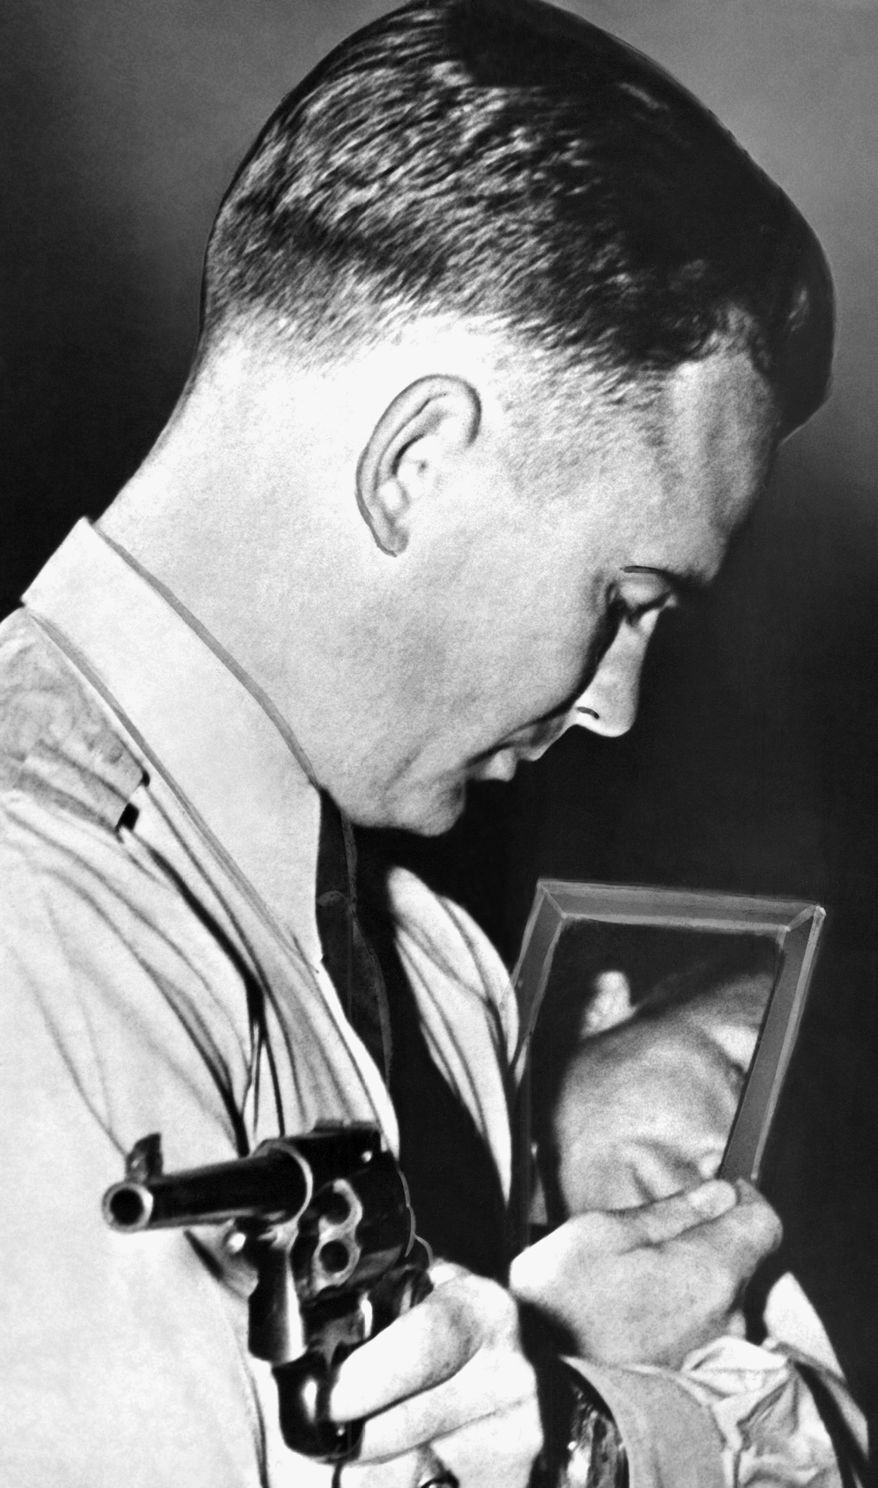 Federal Agent Walter Walsh during a demonstration at Quantico, Va., in October 1937 and shows him as he takes aim in a mirror. Walsh was shot in the shoulder at Bangor, Maine on Oct. 12, 1937, in a gun battle during which Al Brady, leader of a band of Midwest outlaws, and a henchman were shot to death, and a third gunman apprehended. (AP Photo)